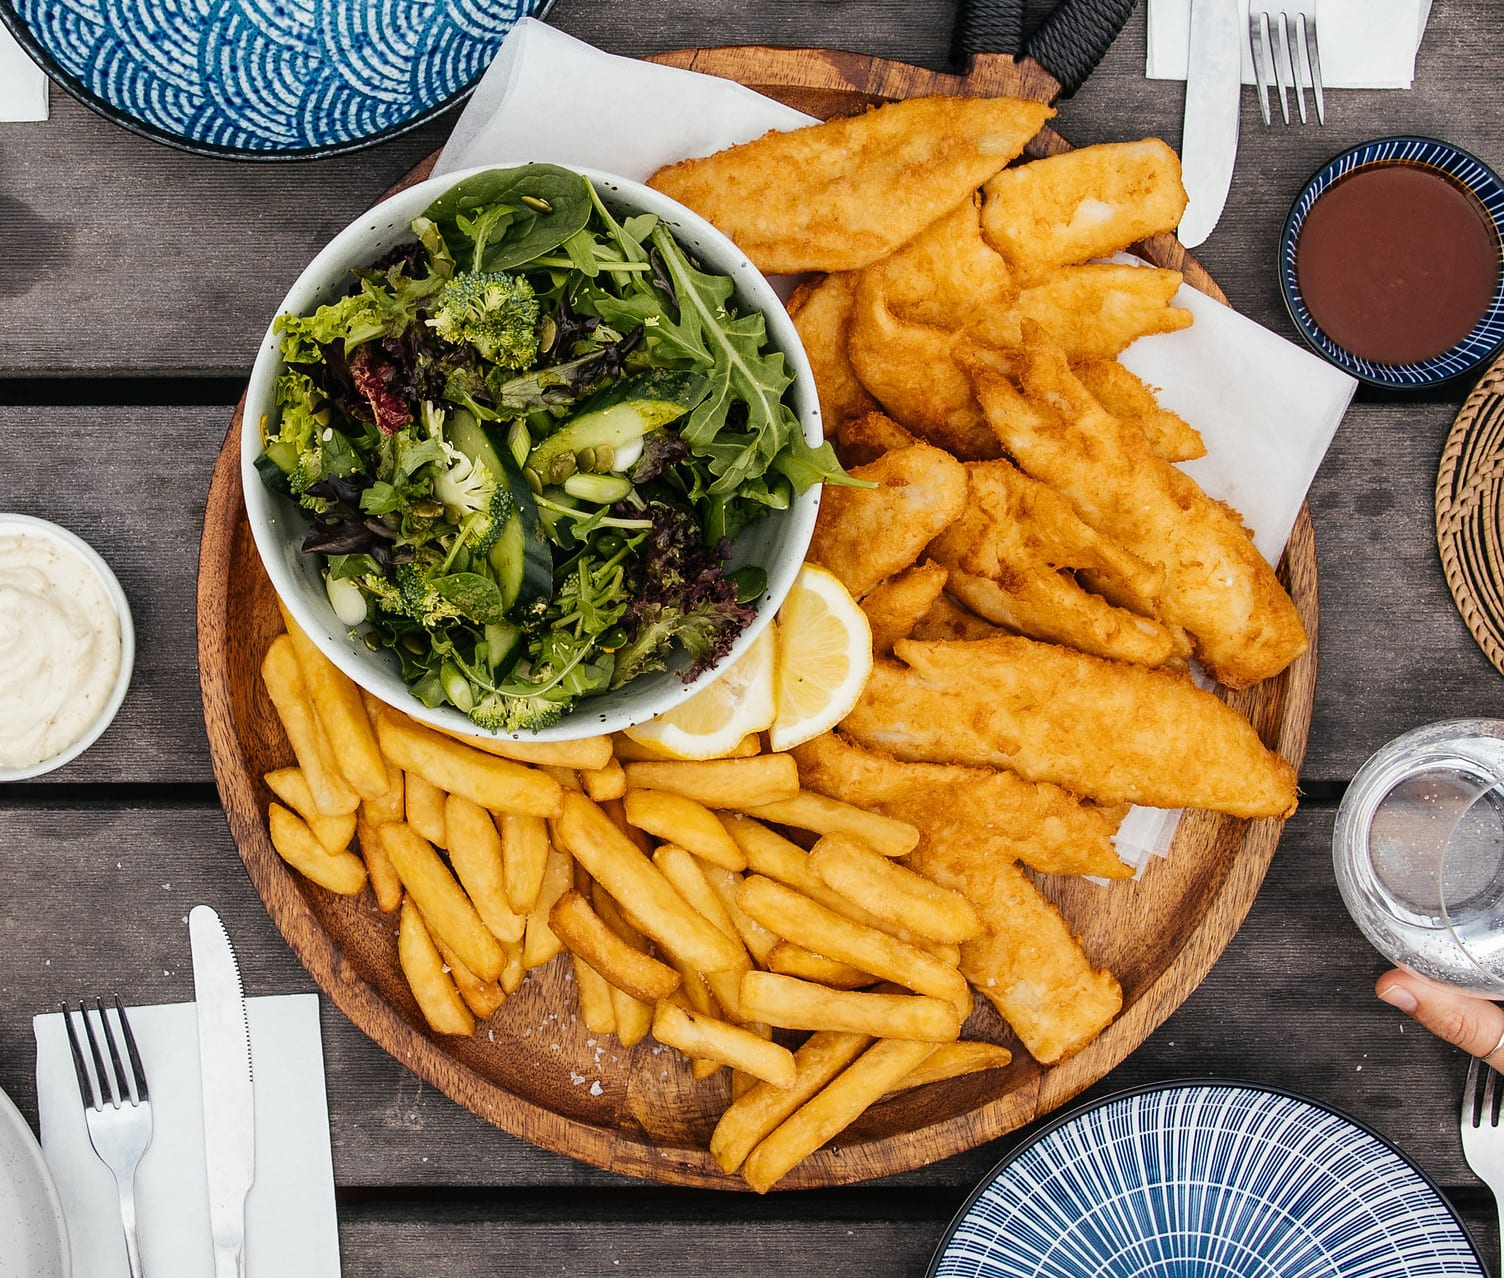 Family WA Mackerel with chips and 3 dipping sauces $44.90 - Availability: Lunch and Dinner, 7 days